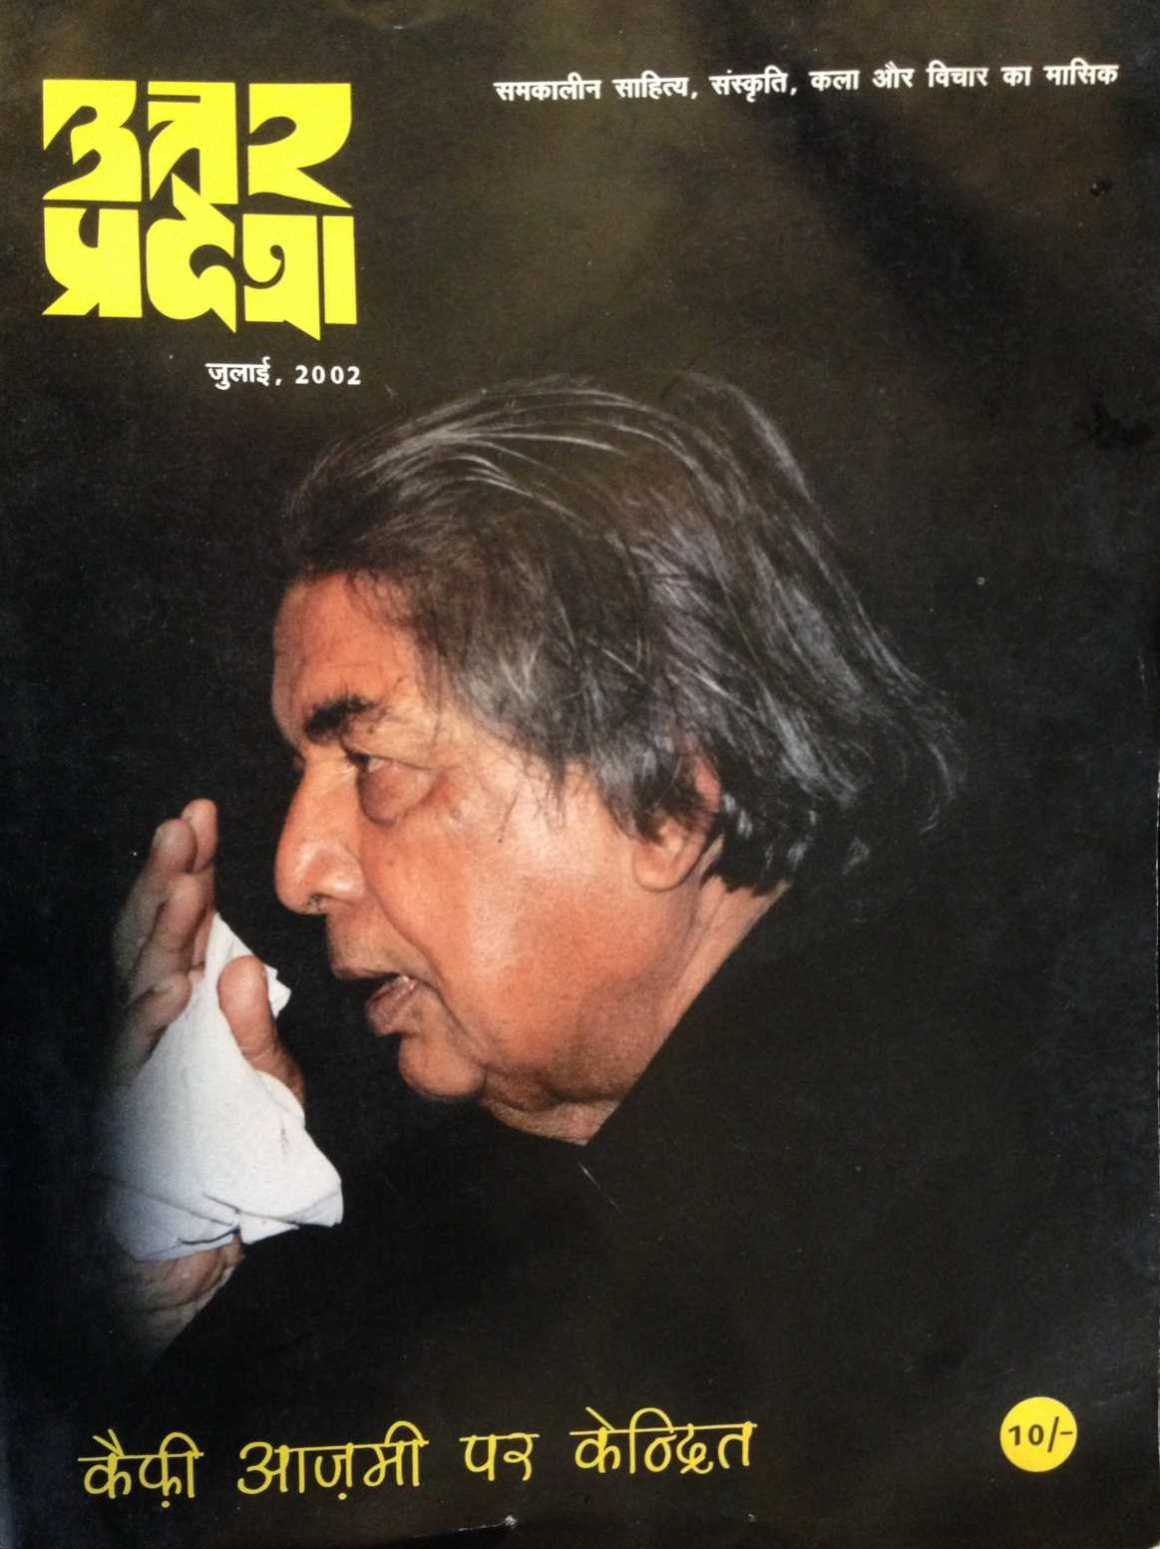 Uttar Pradesh for Kaifi Azmi